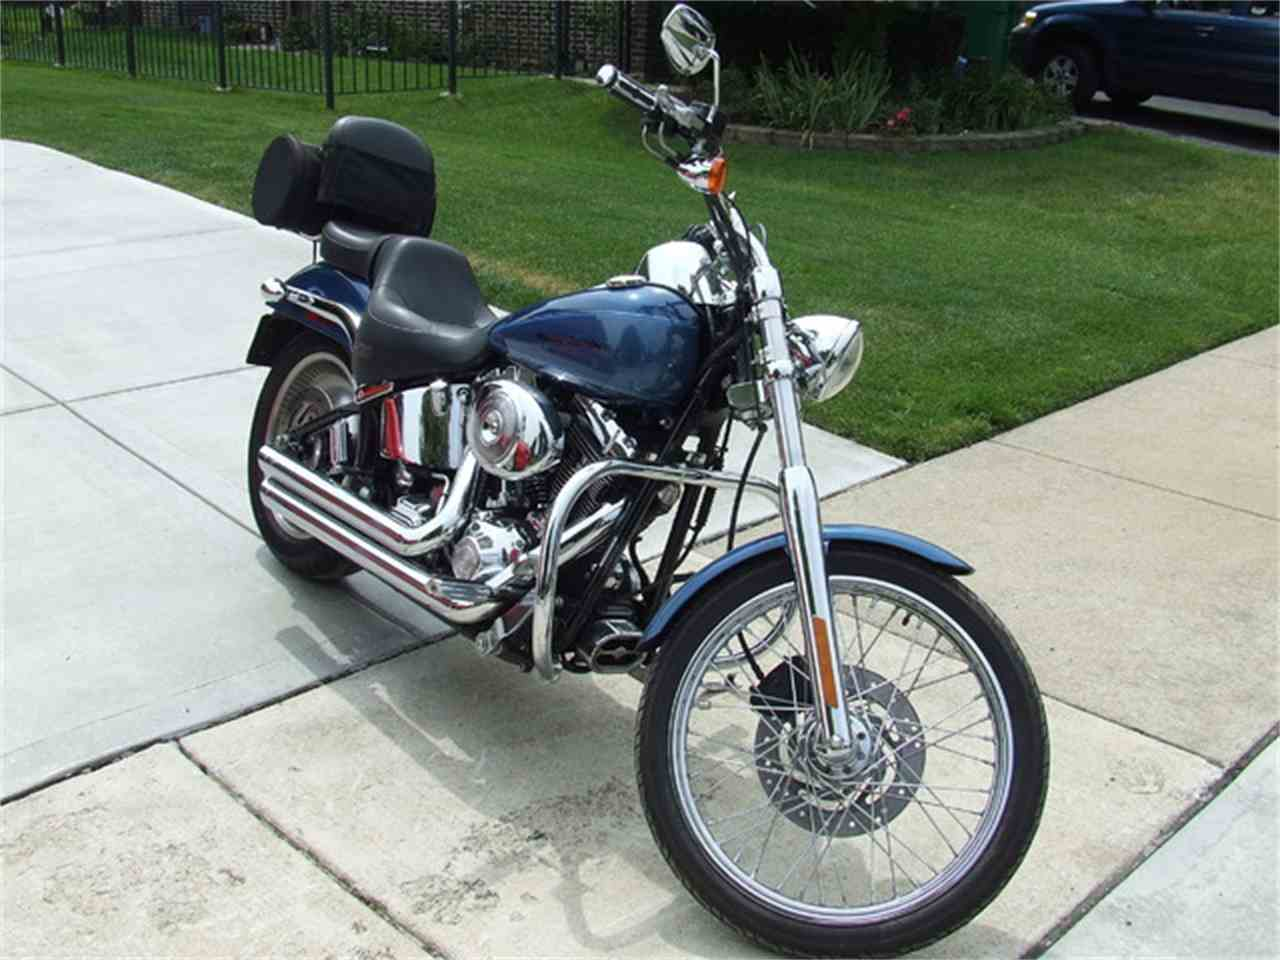 2005 Harley-Davidson Softail for Sale - CC-567802